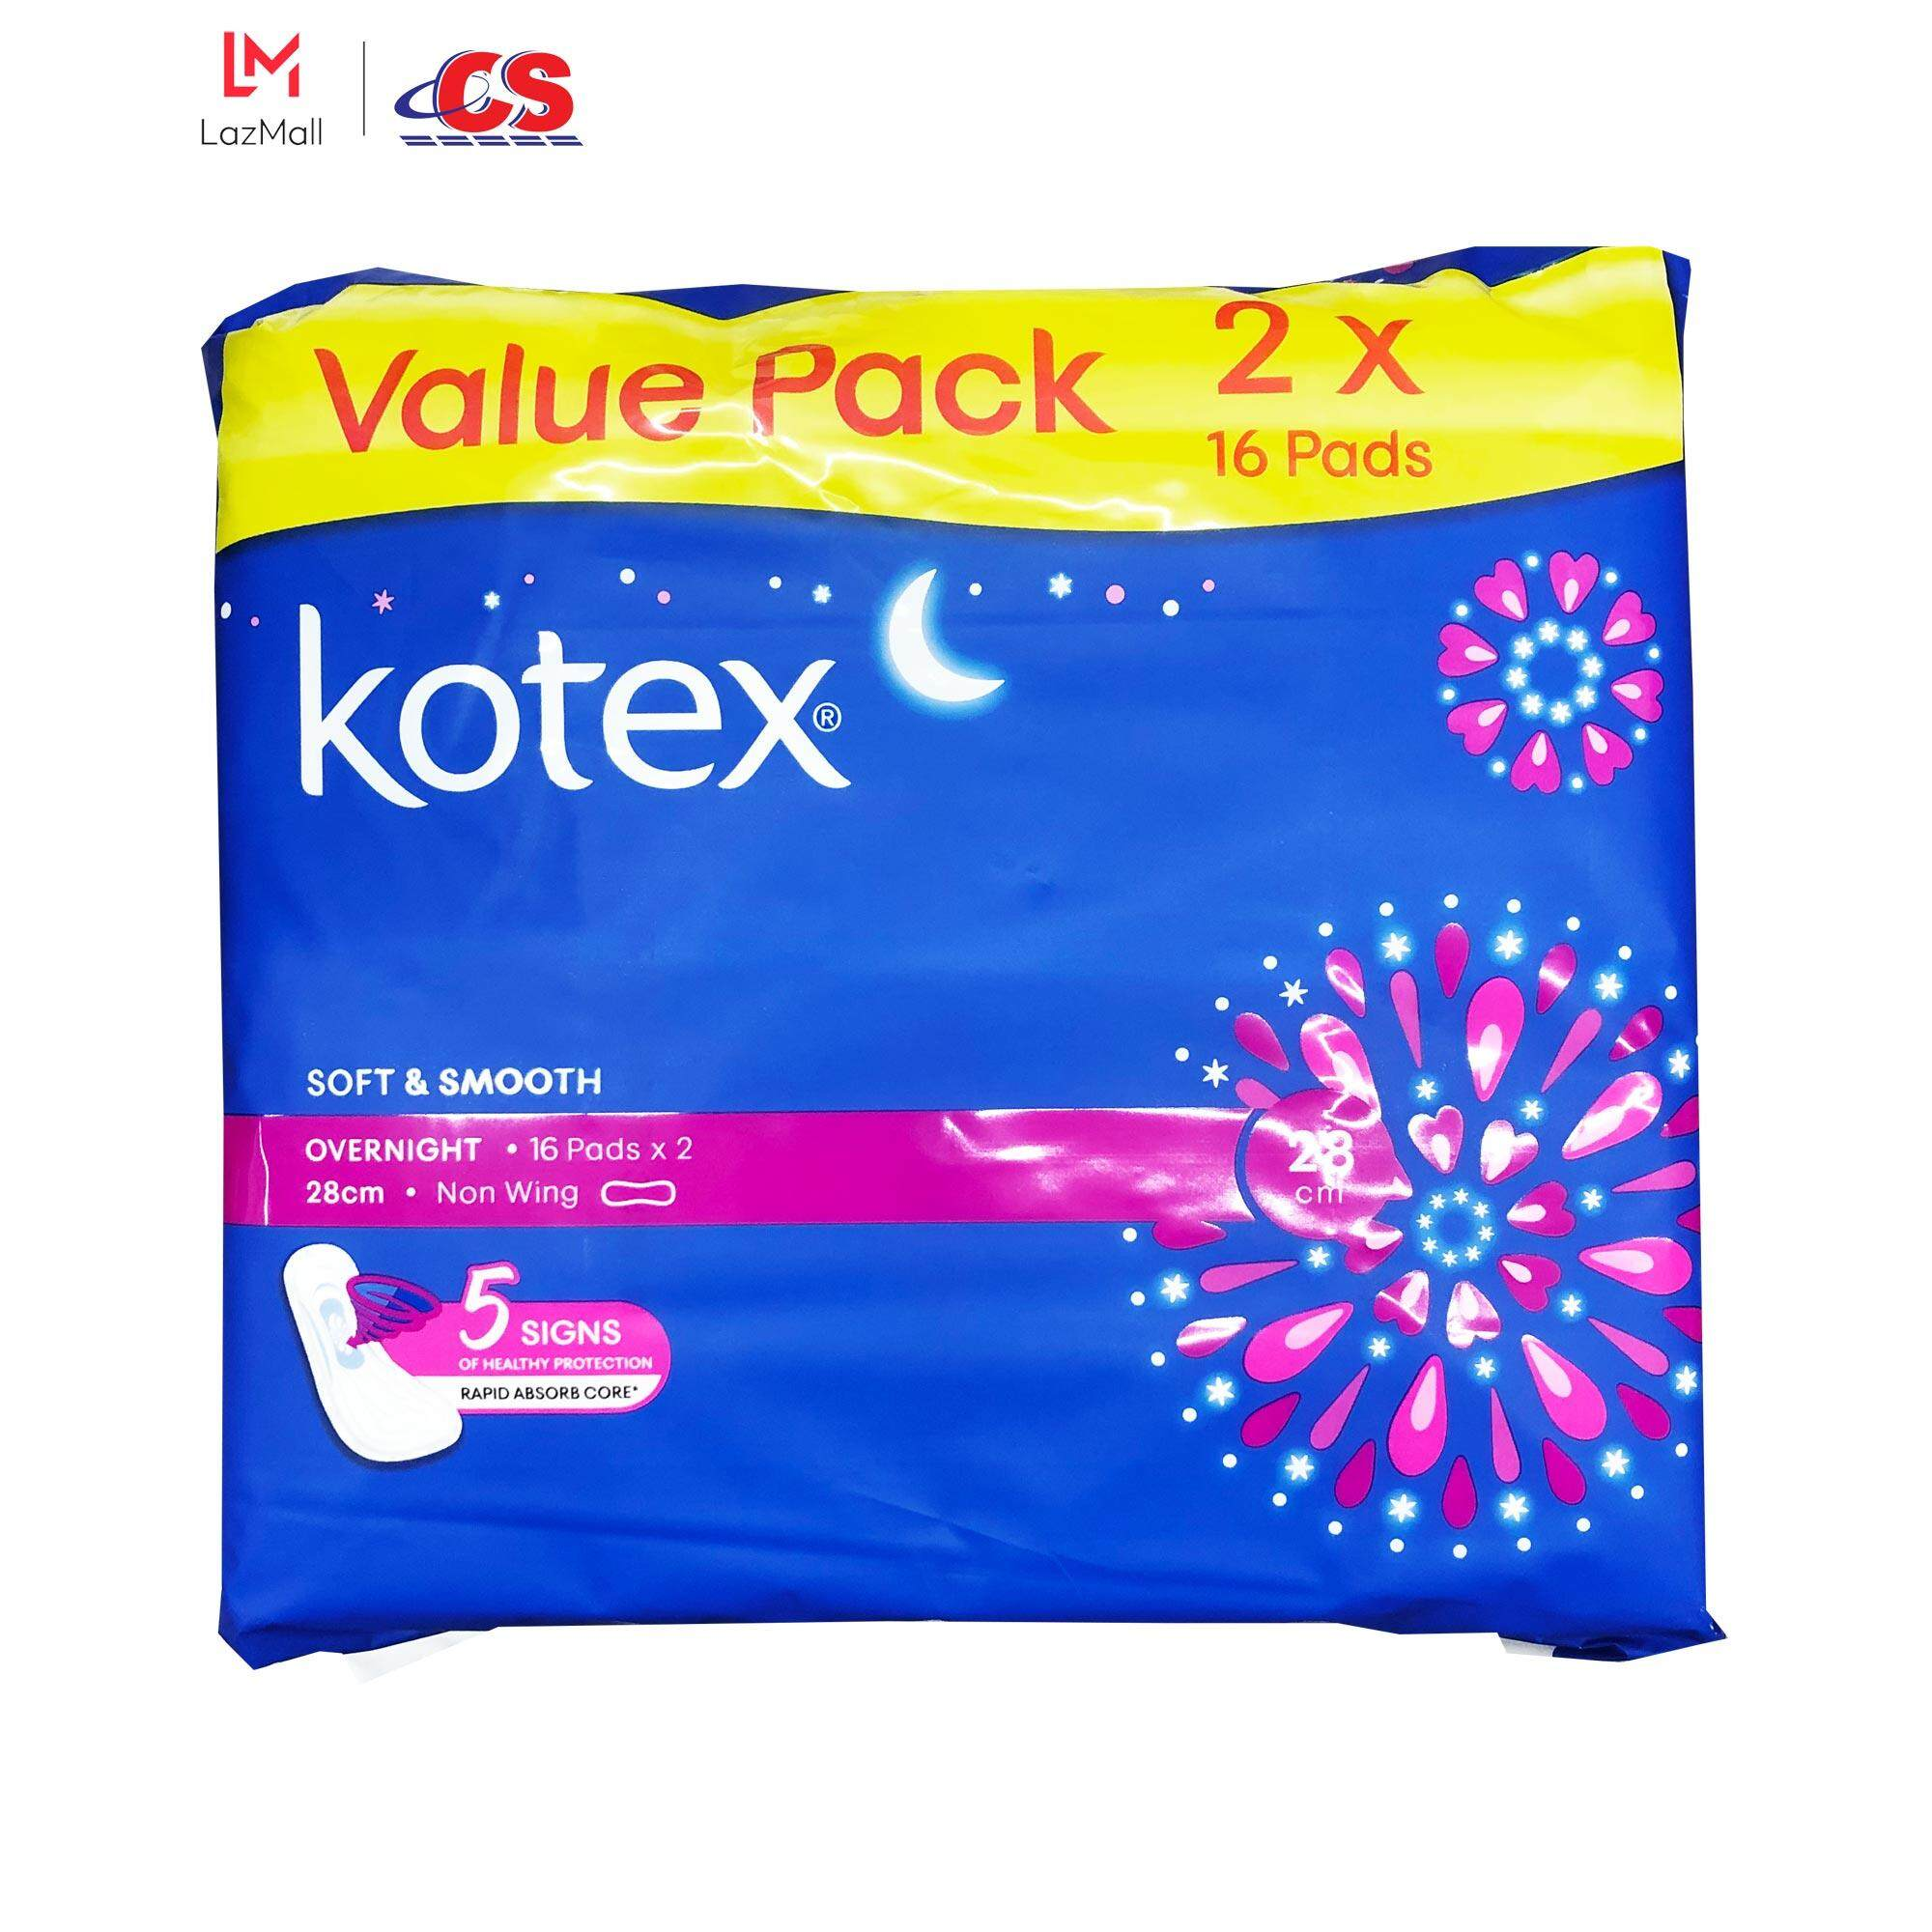 KOTEX Soft and Smooth Overnight Non Wing 28cm 2x16s